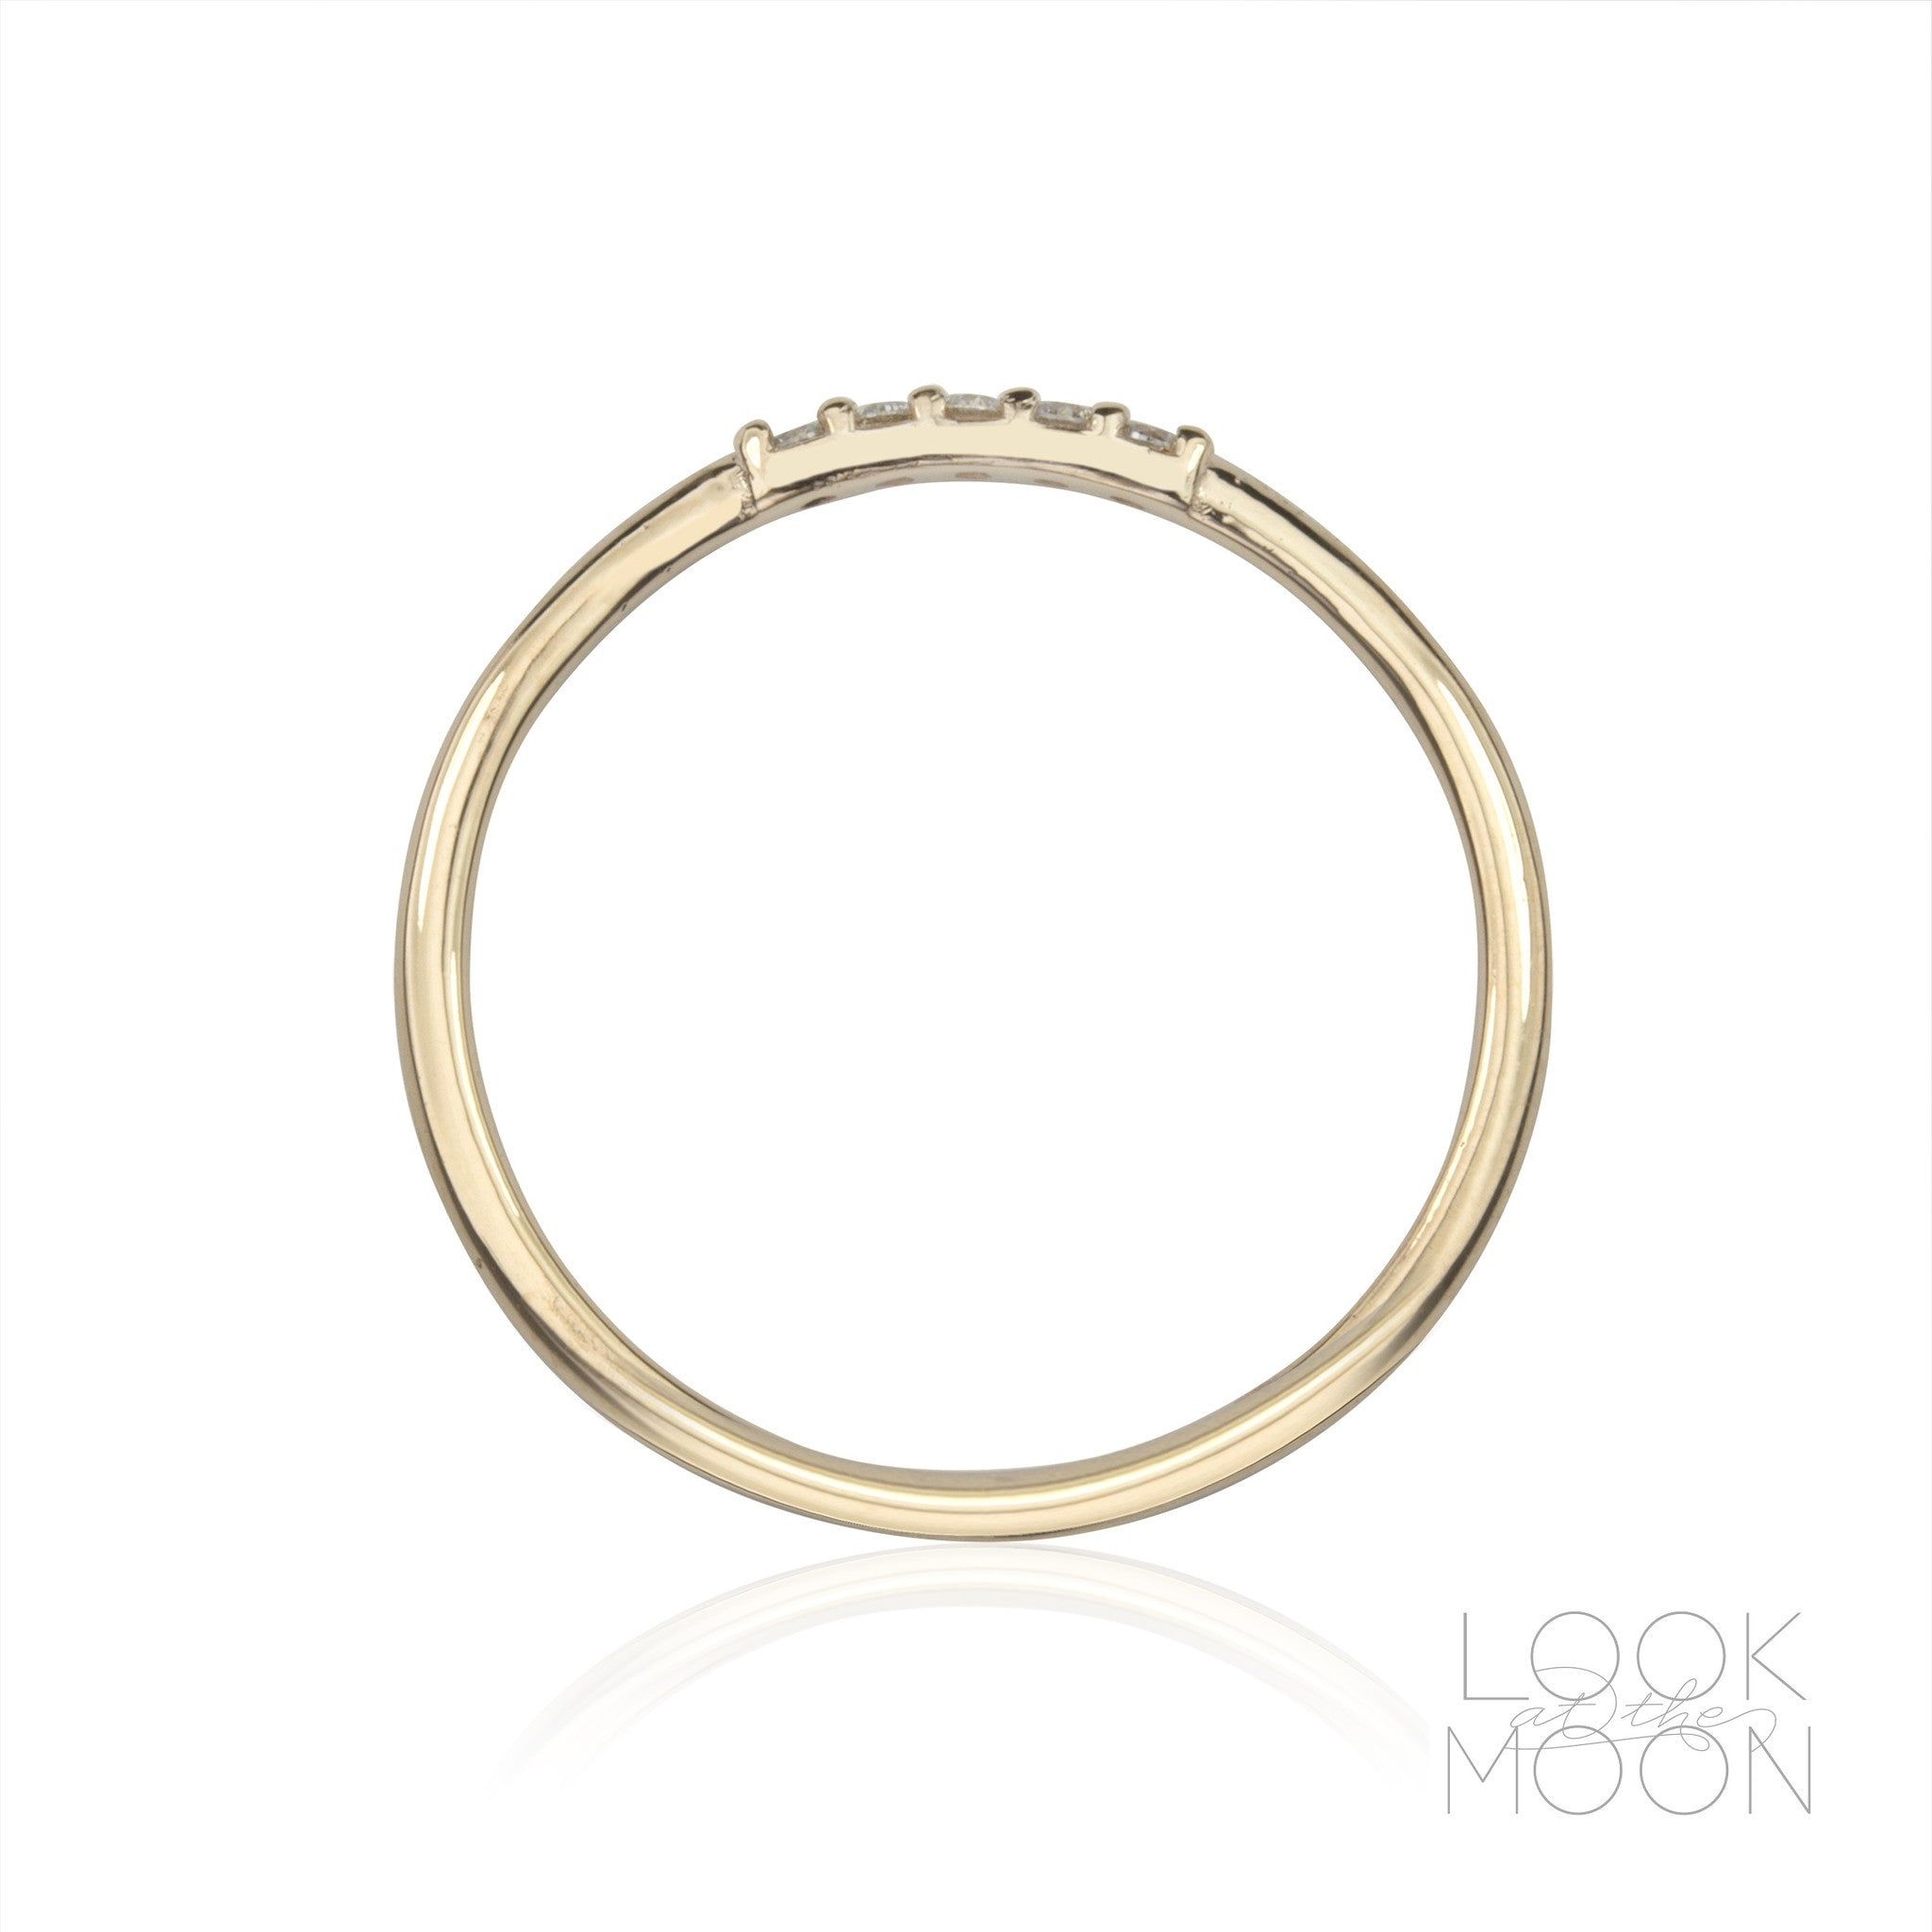 Five Star Ring Black Diamonds & White Gold – Look at the Moon